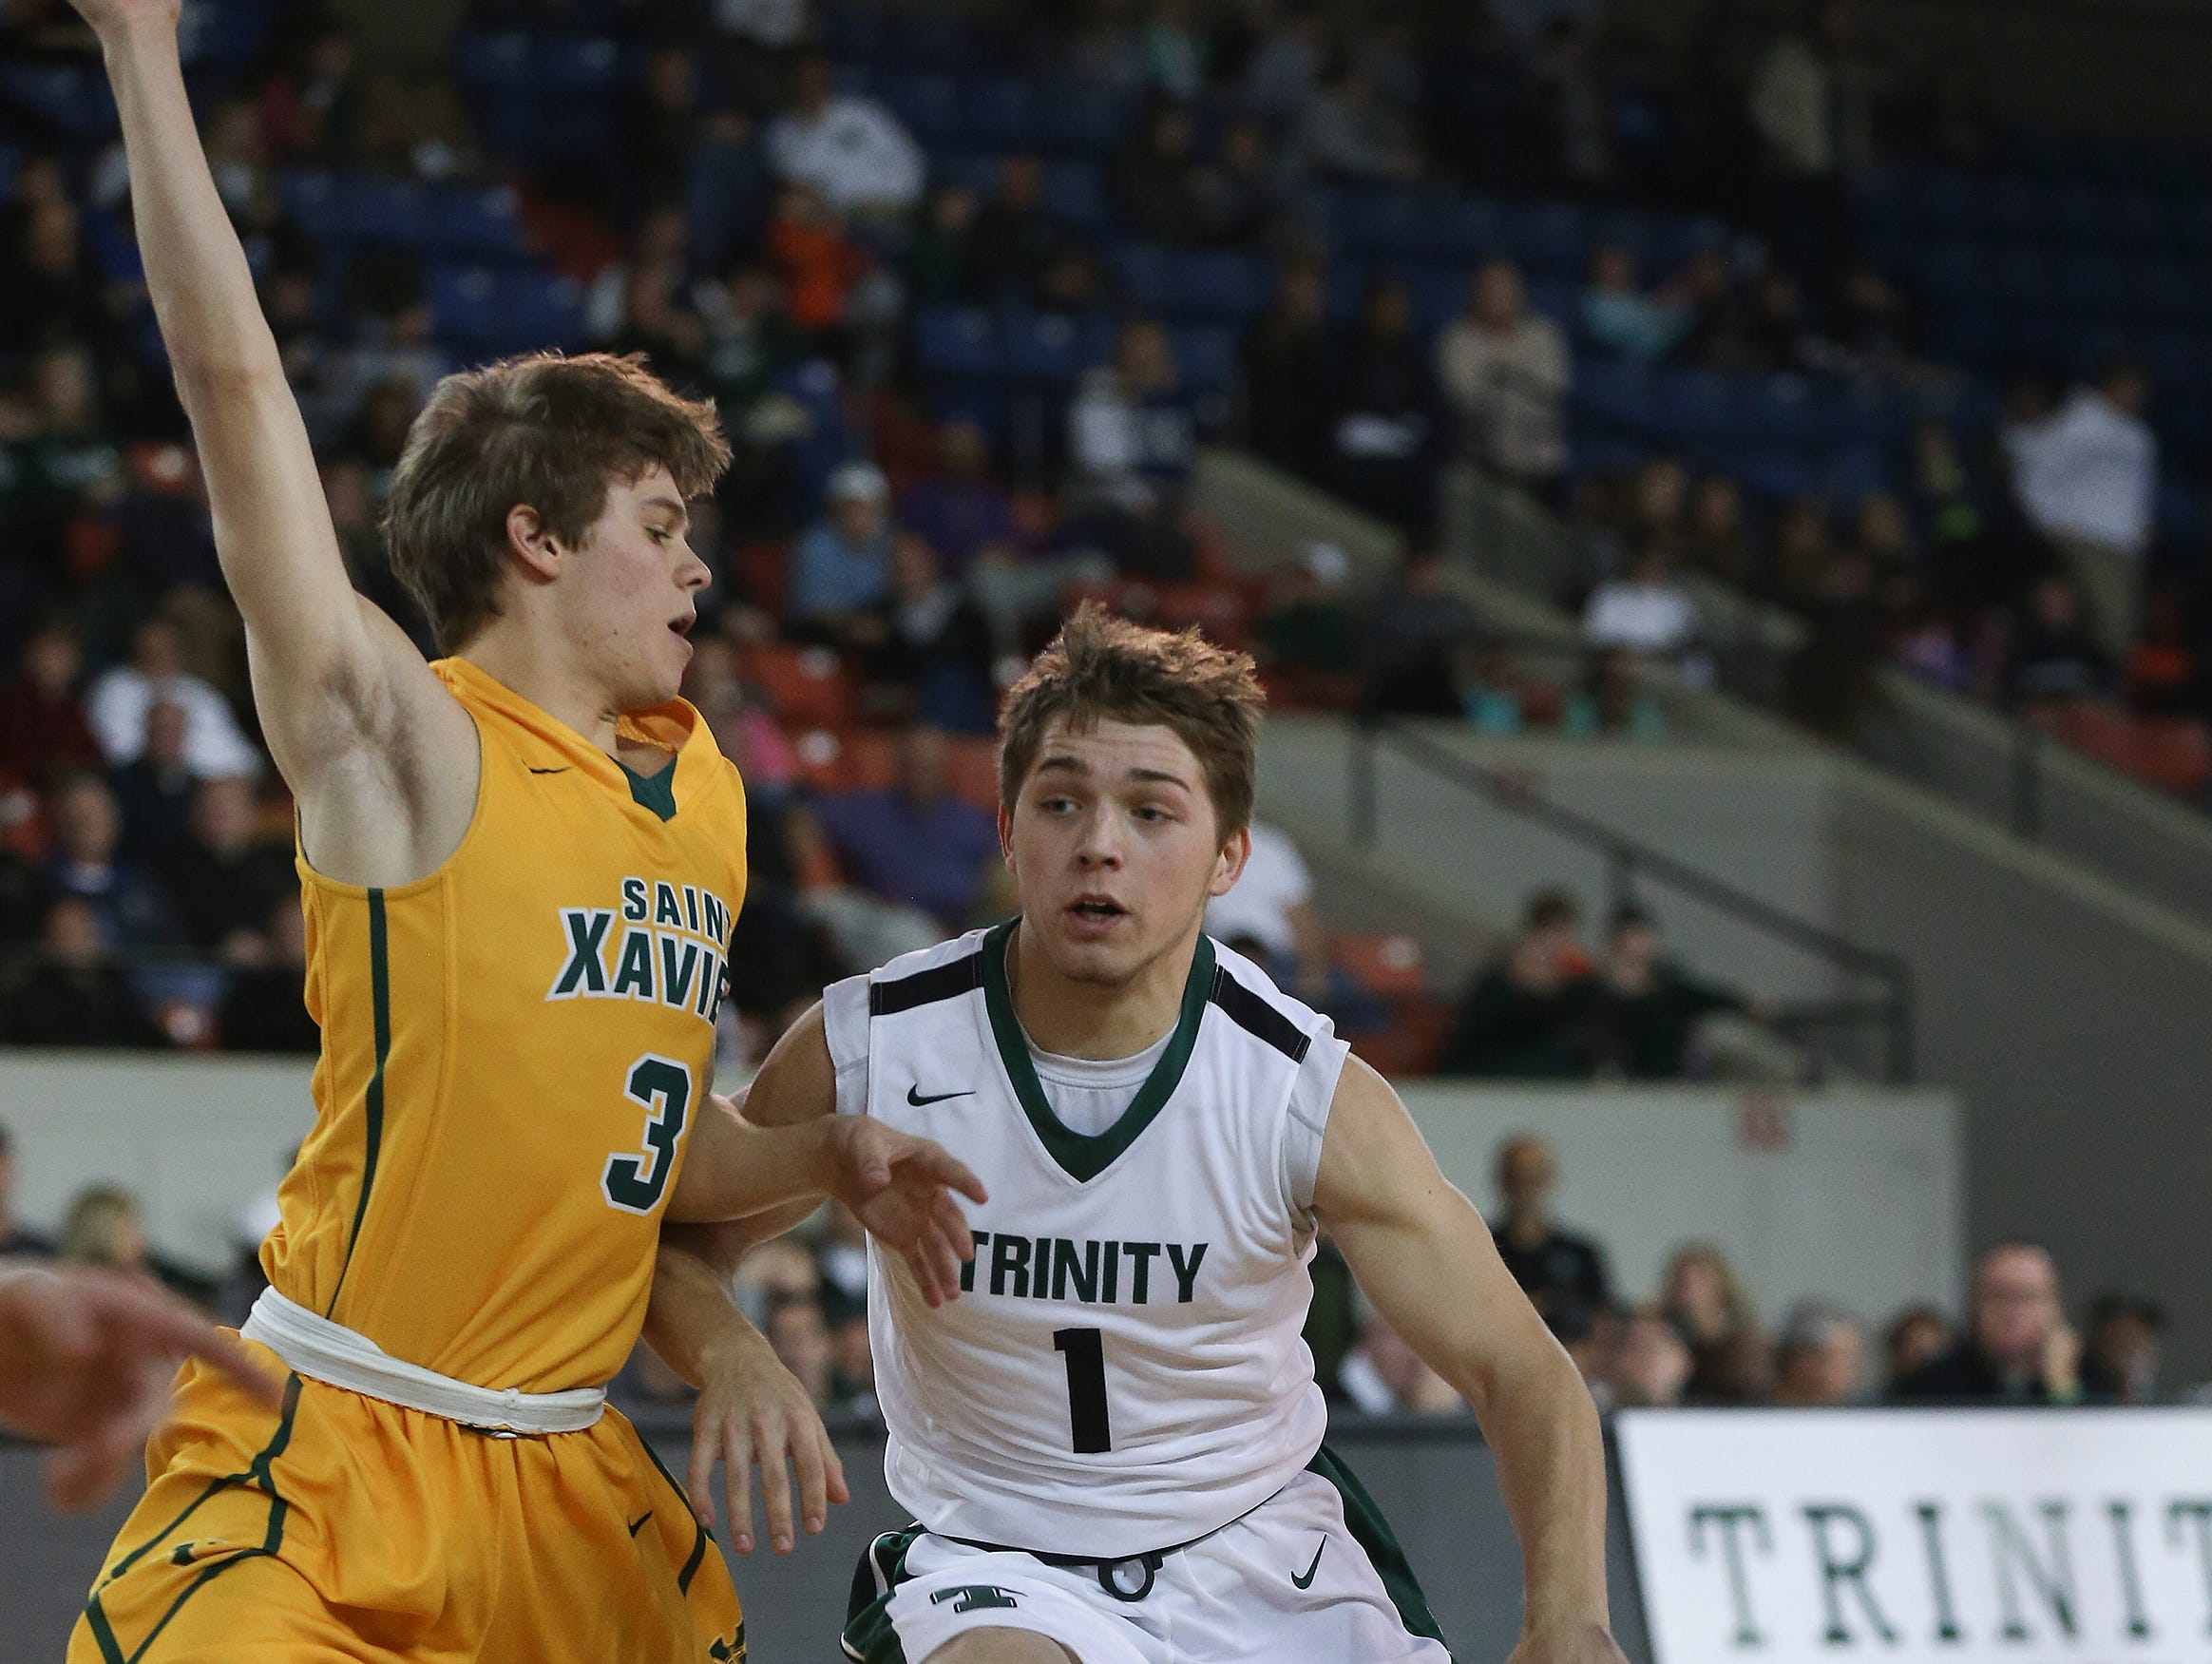 Trinity's Jacob King (1) drives against St. X's Cameron McDonogh (3) during their game at Broadbent Arena. Jan. 6, 2017